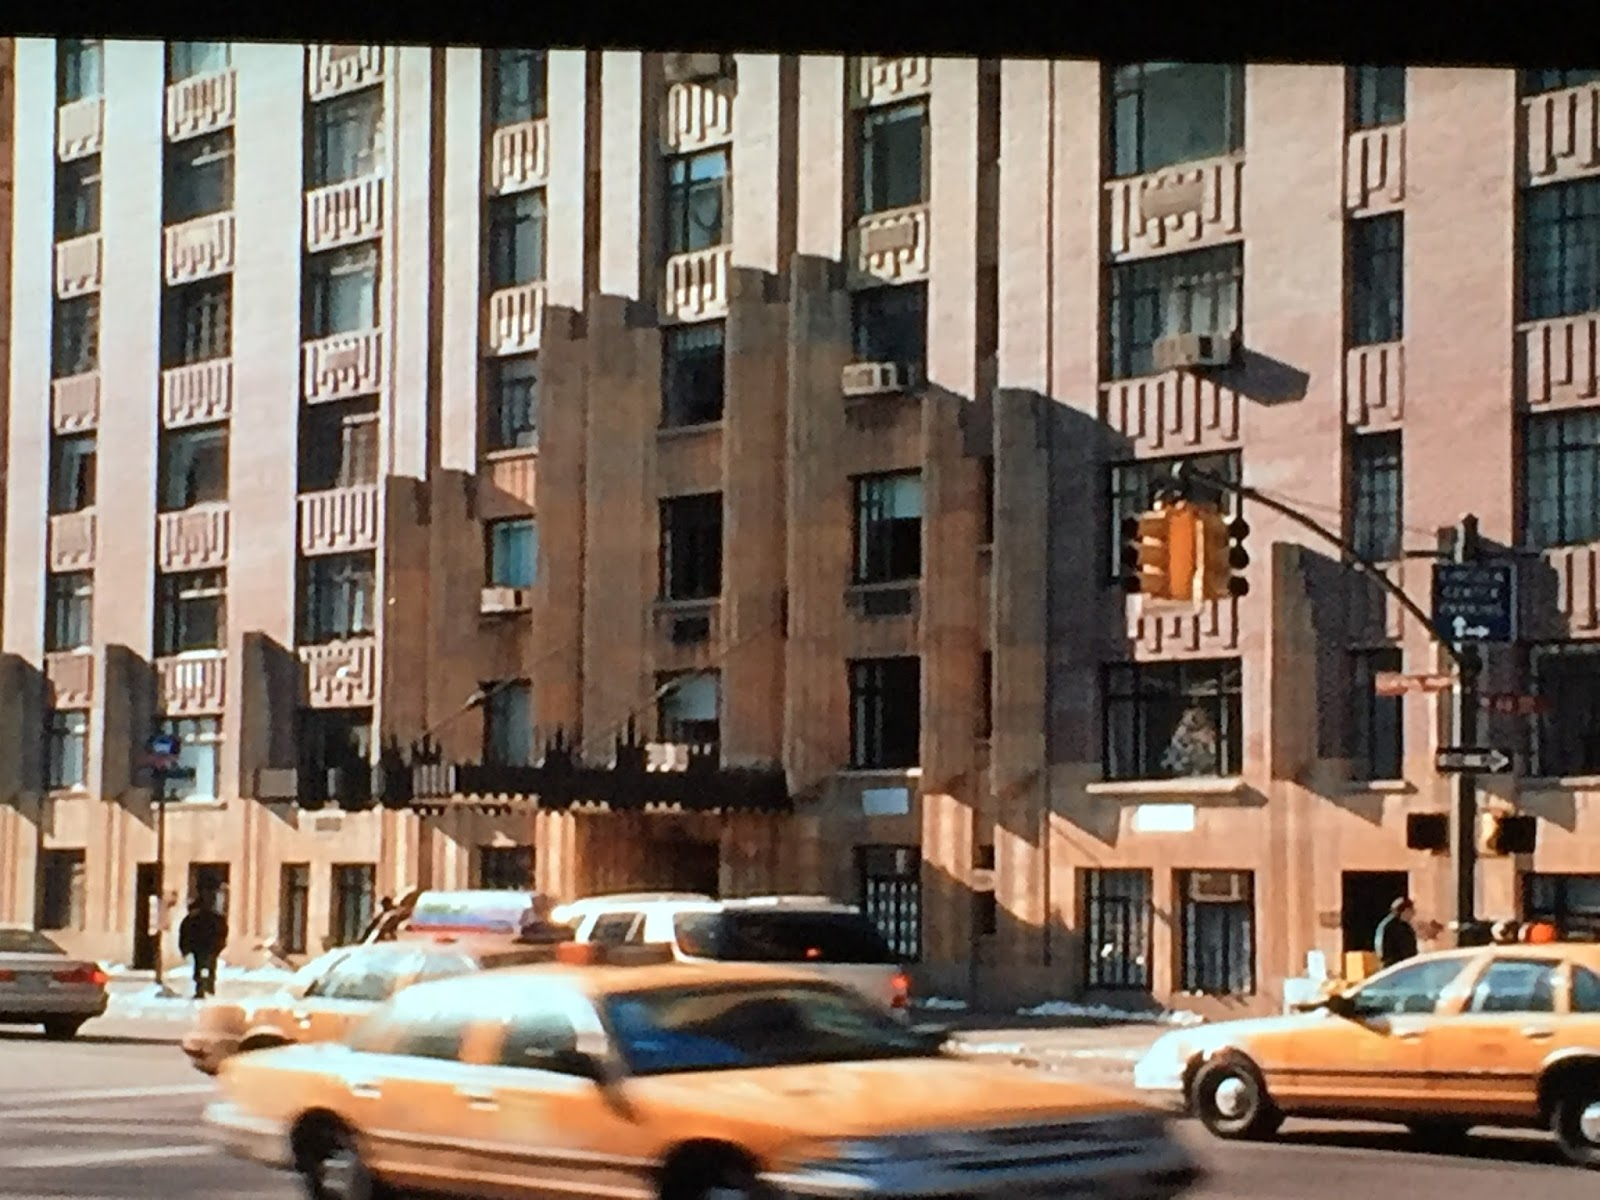 Apartment Building Ghostbusters reel to real movie and tv locations: elf (2003)